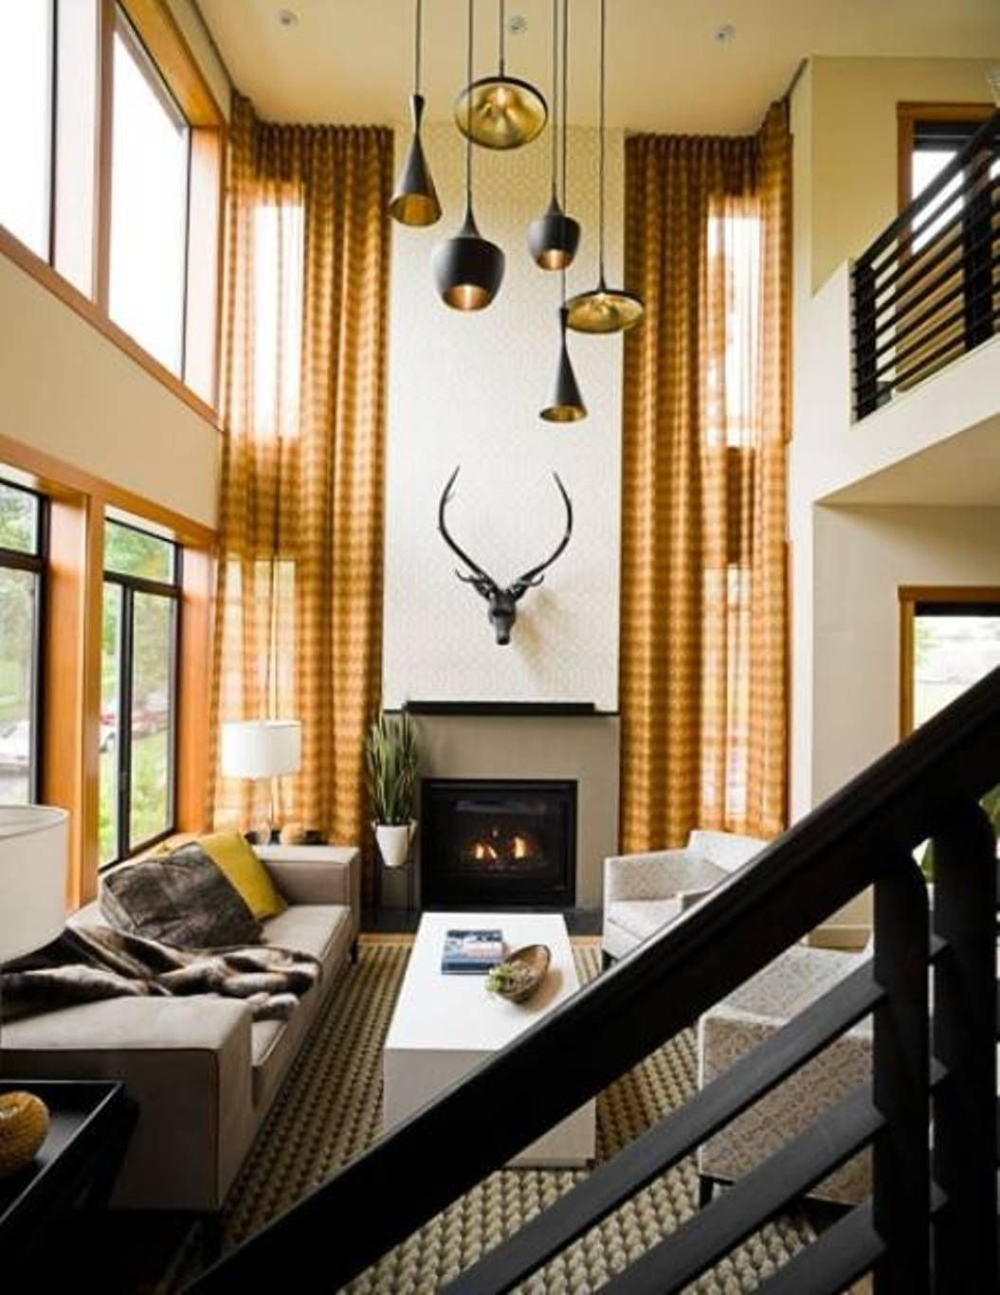 Modern Vaulted Ceiling Lighting Ideas ... in 2020 | High ...